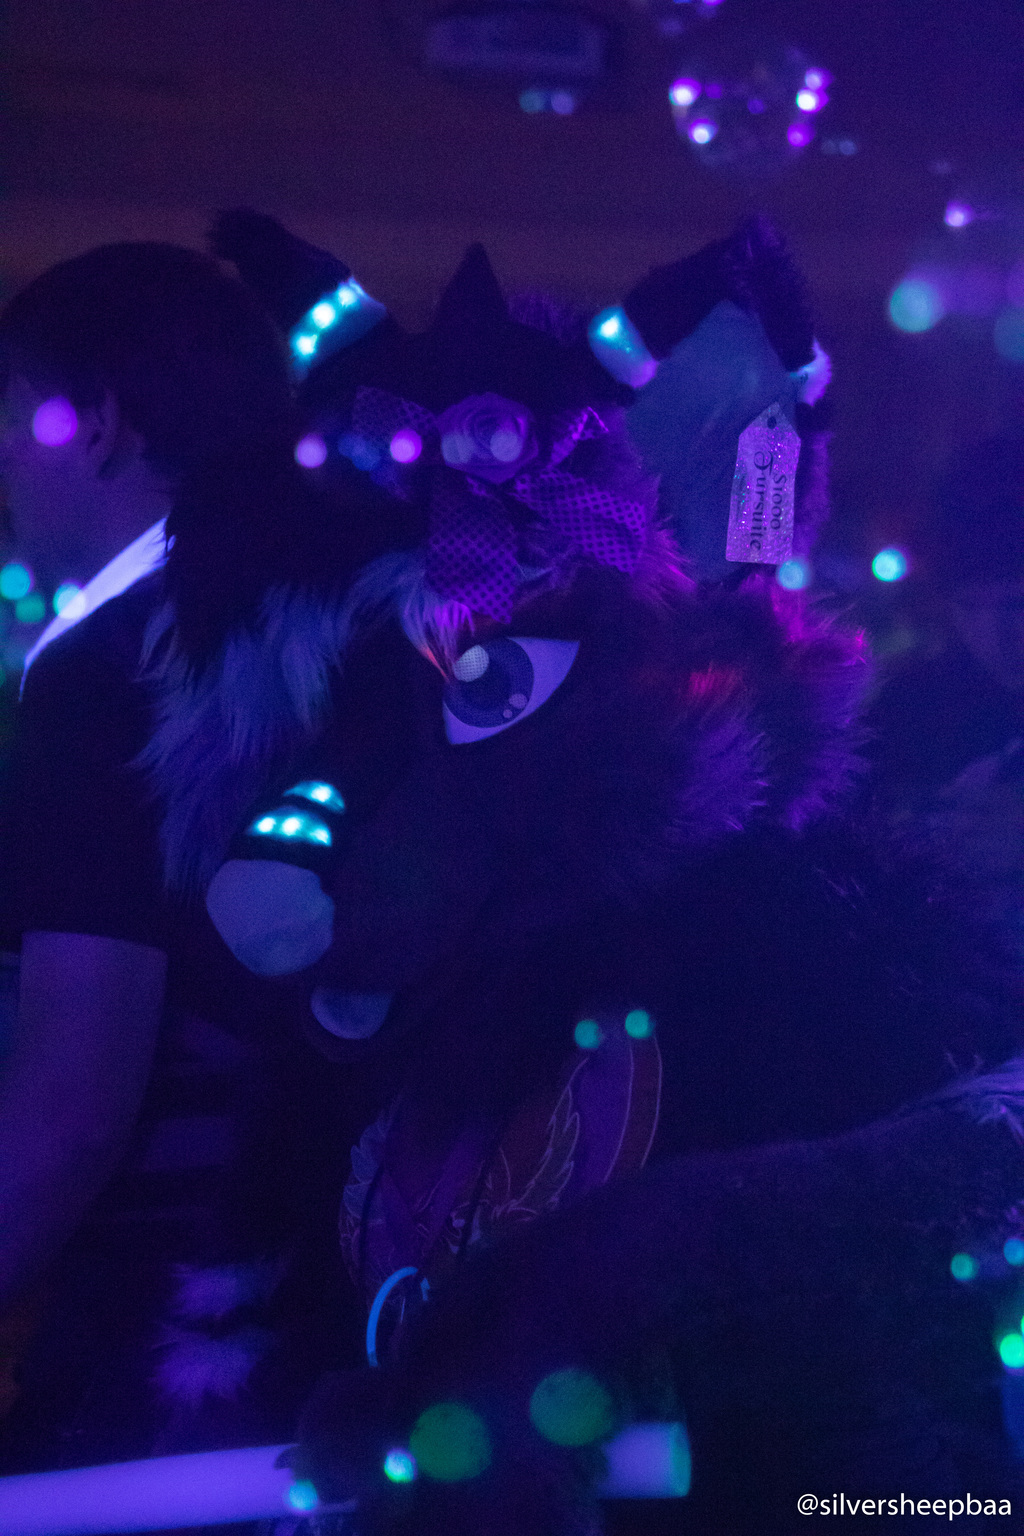 Most recent image: NeonFur 2018: Roxanne 1